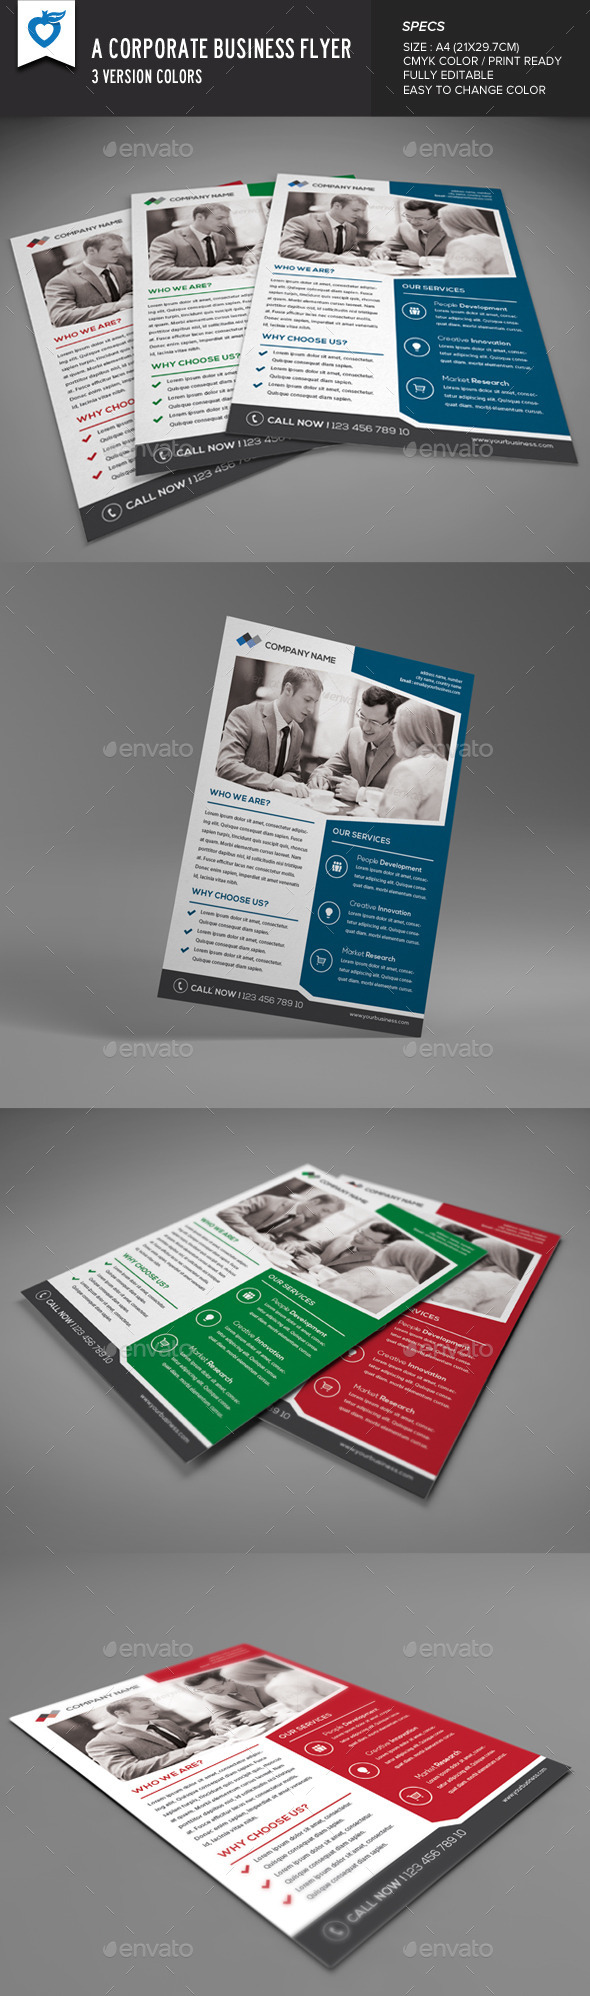 GraphicRiver A Corporate Business Flyer 9183774